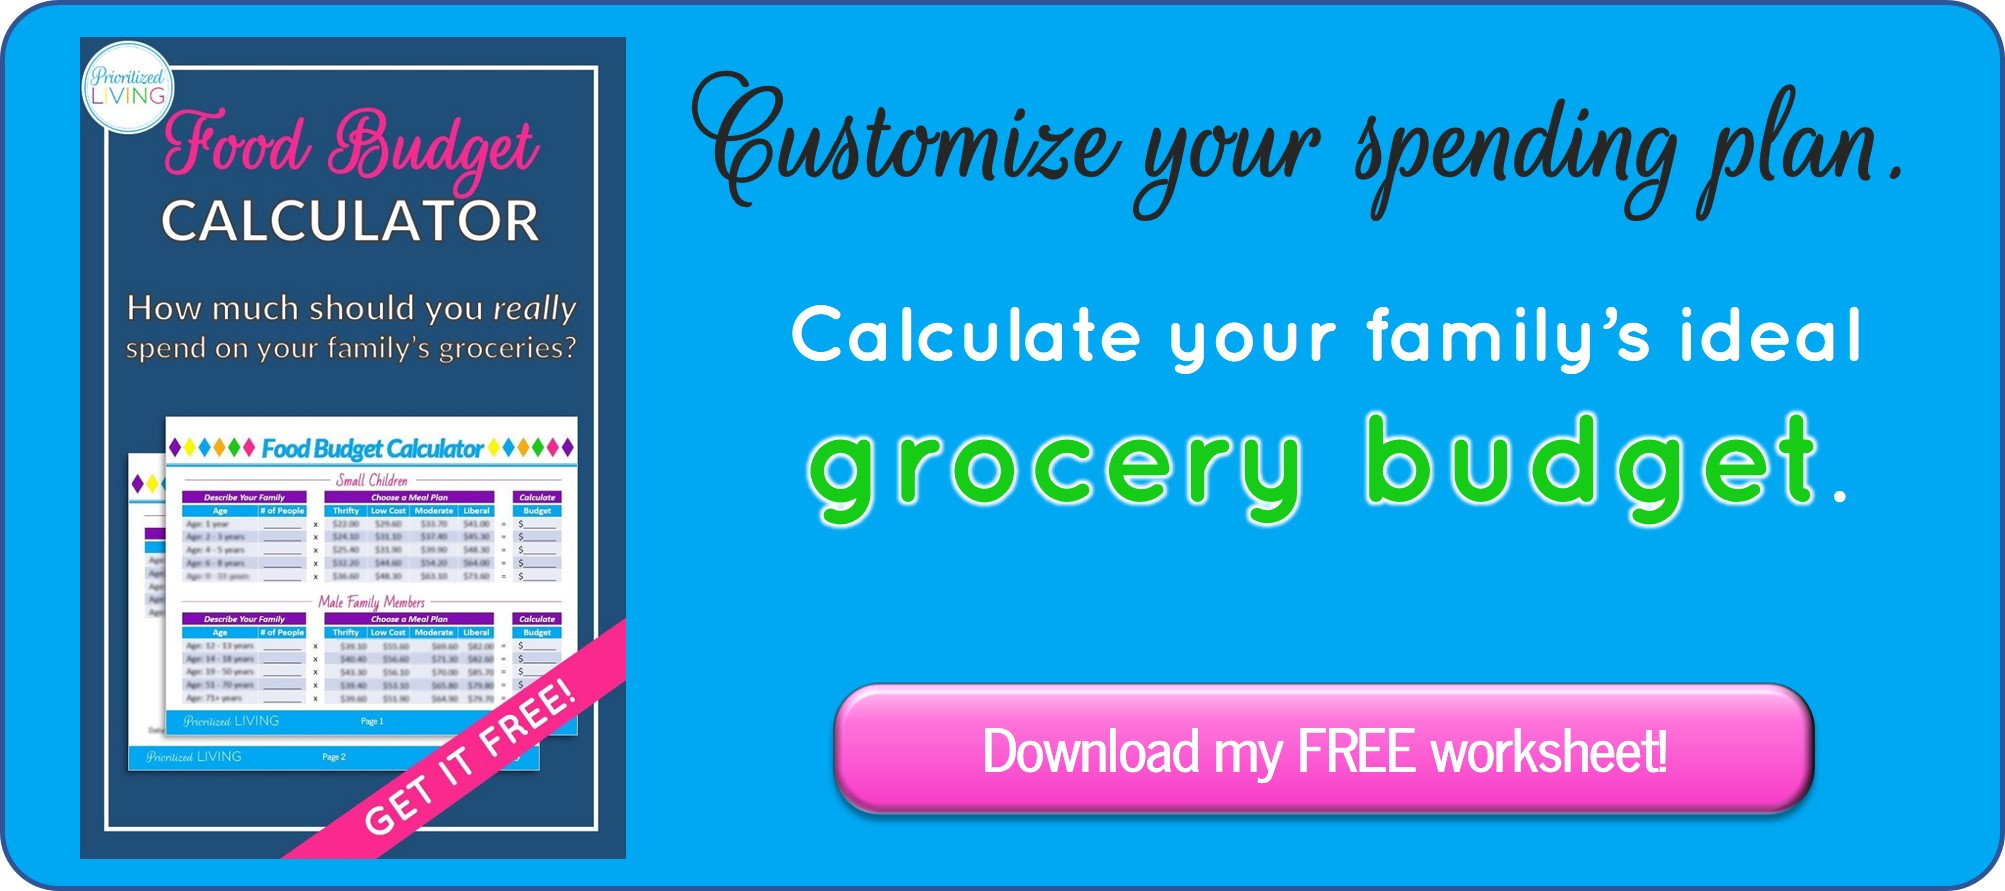 Download your FREE Food Budget Calculator.